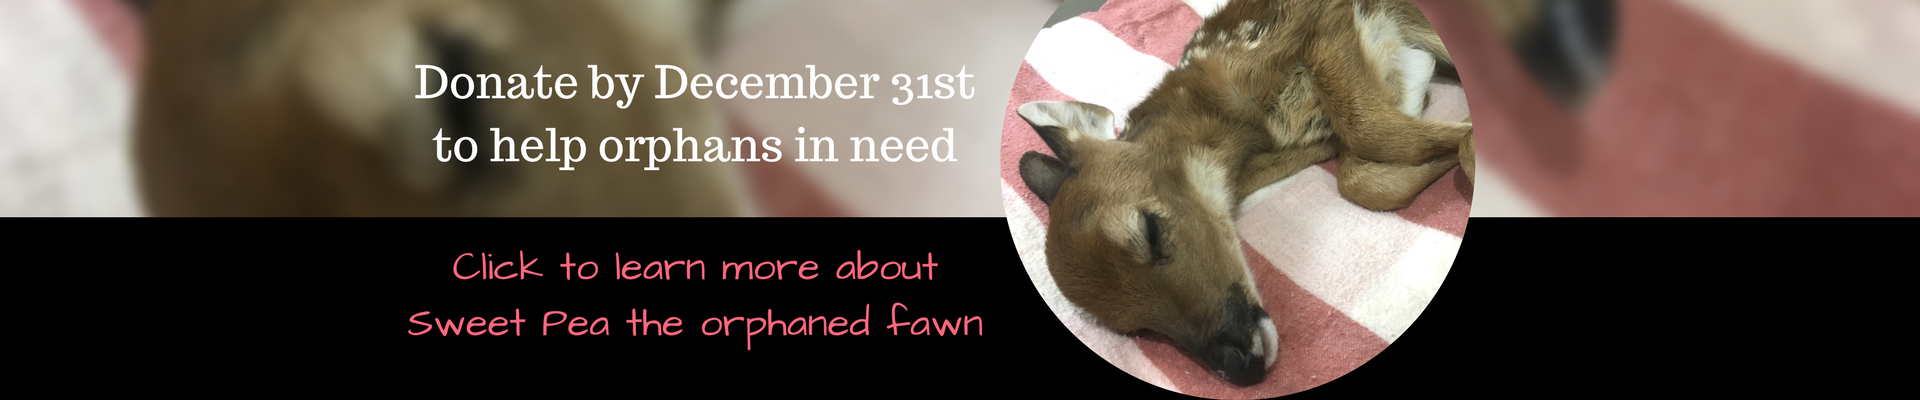 Help orphans like Sweet Pea get a second chance